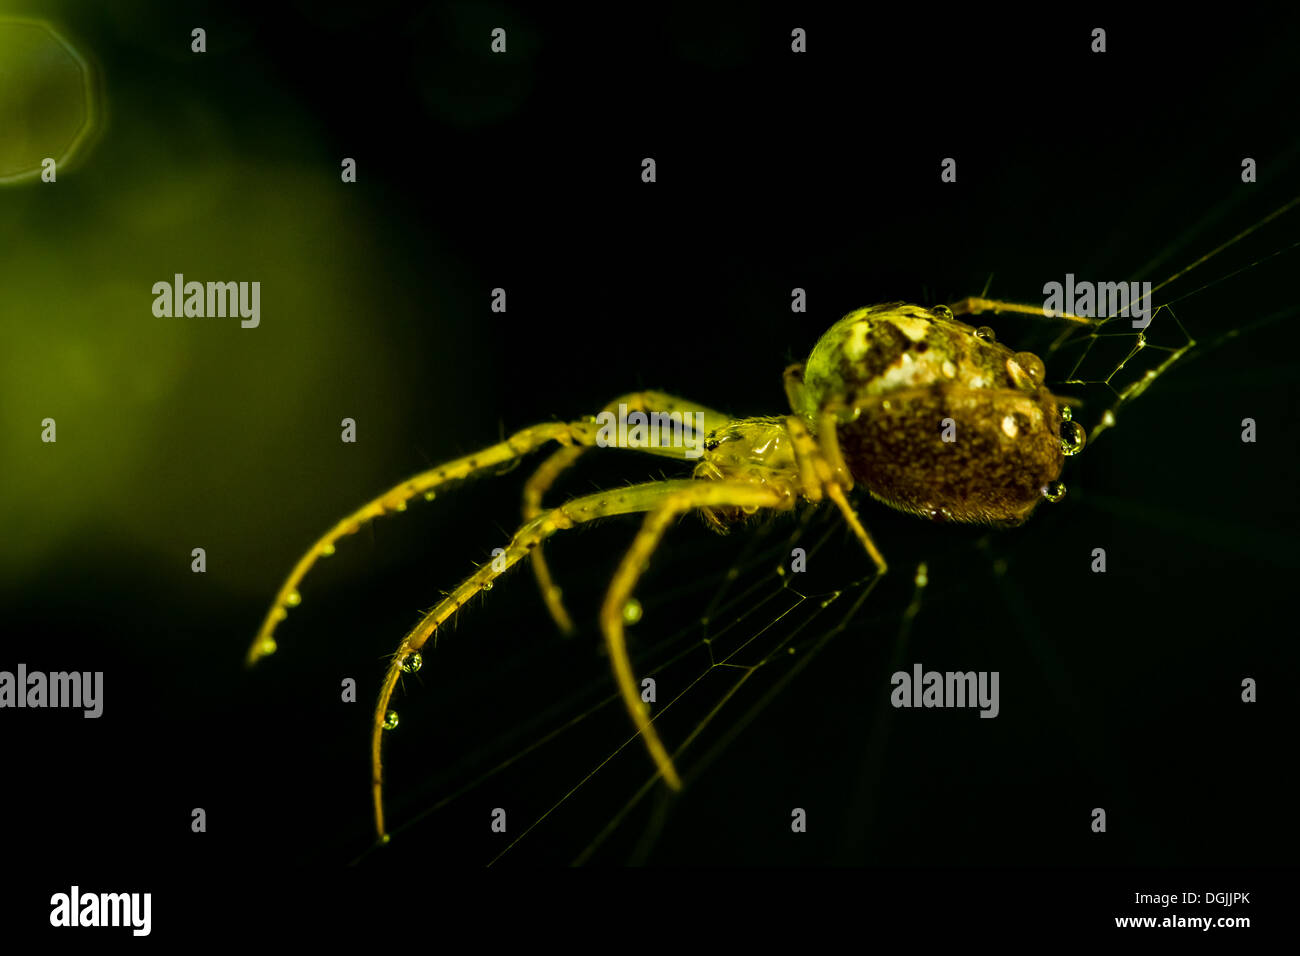 Glowing spider in the dark. Eyes in focus. - Stock Image